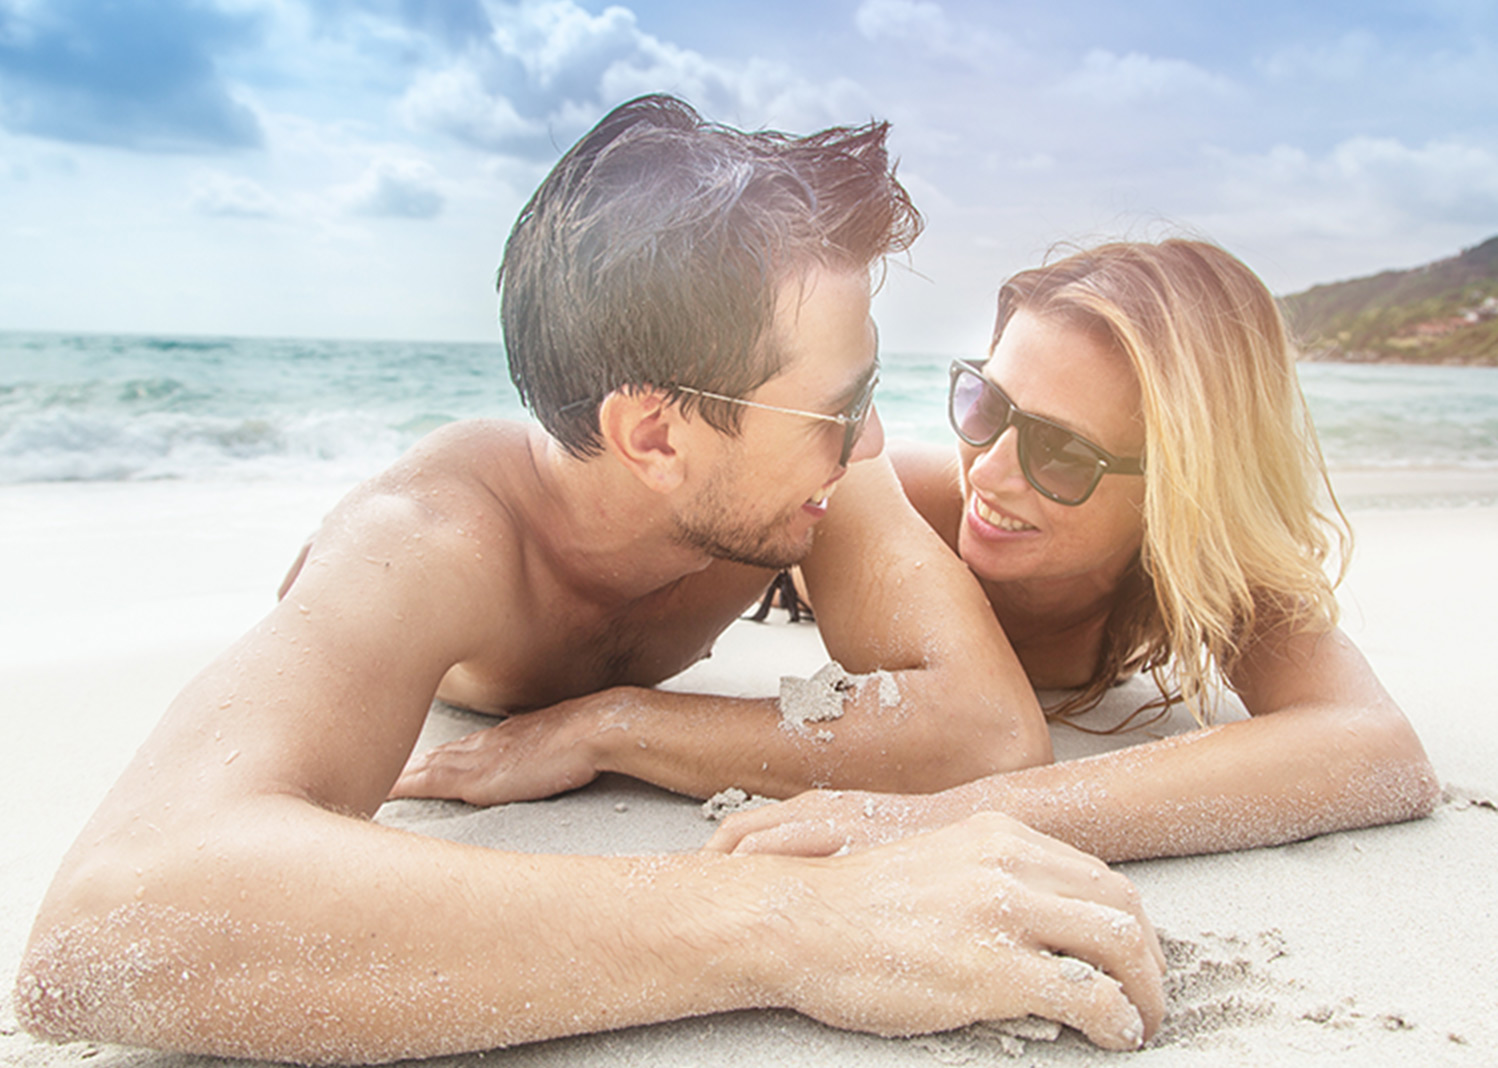 Starwood Vacation promo of a couple on a beach